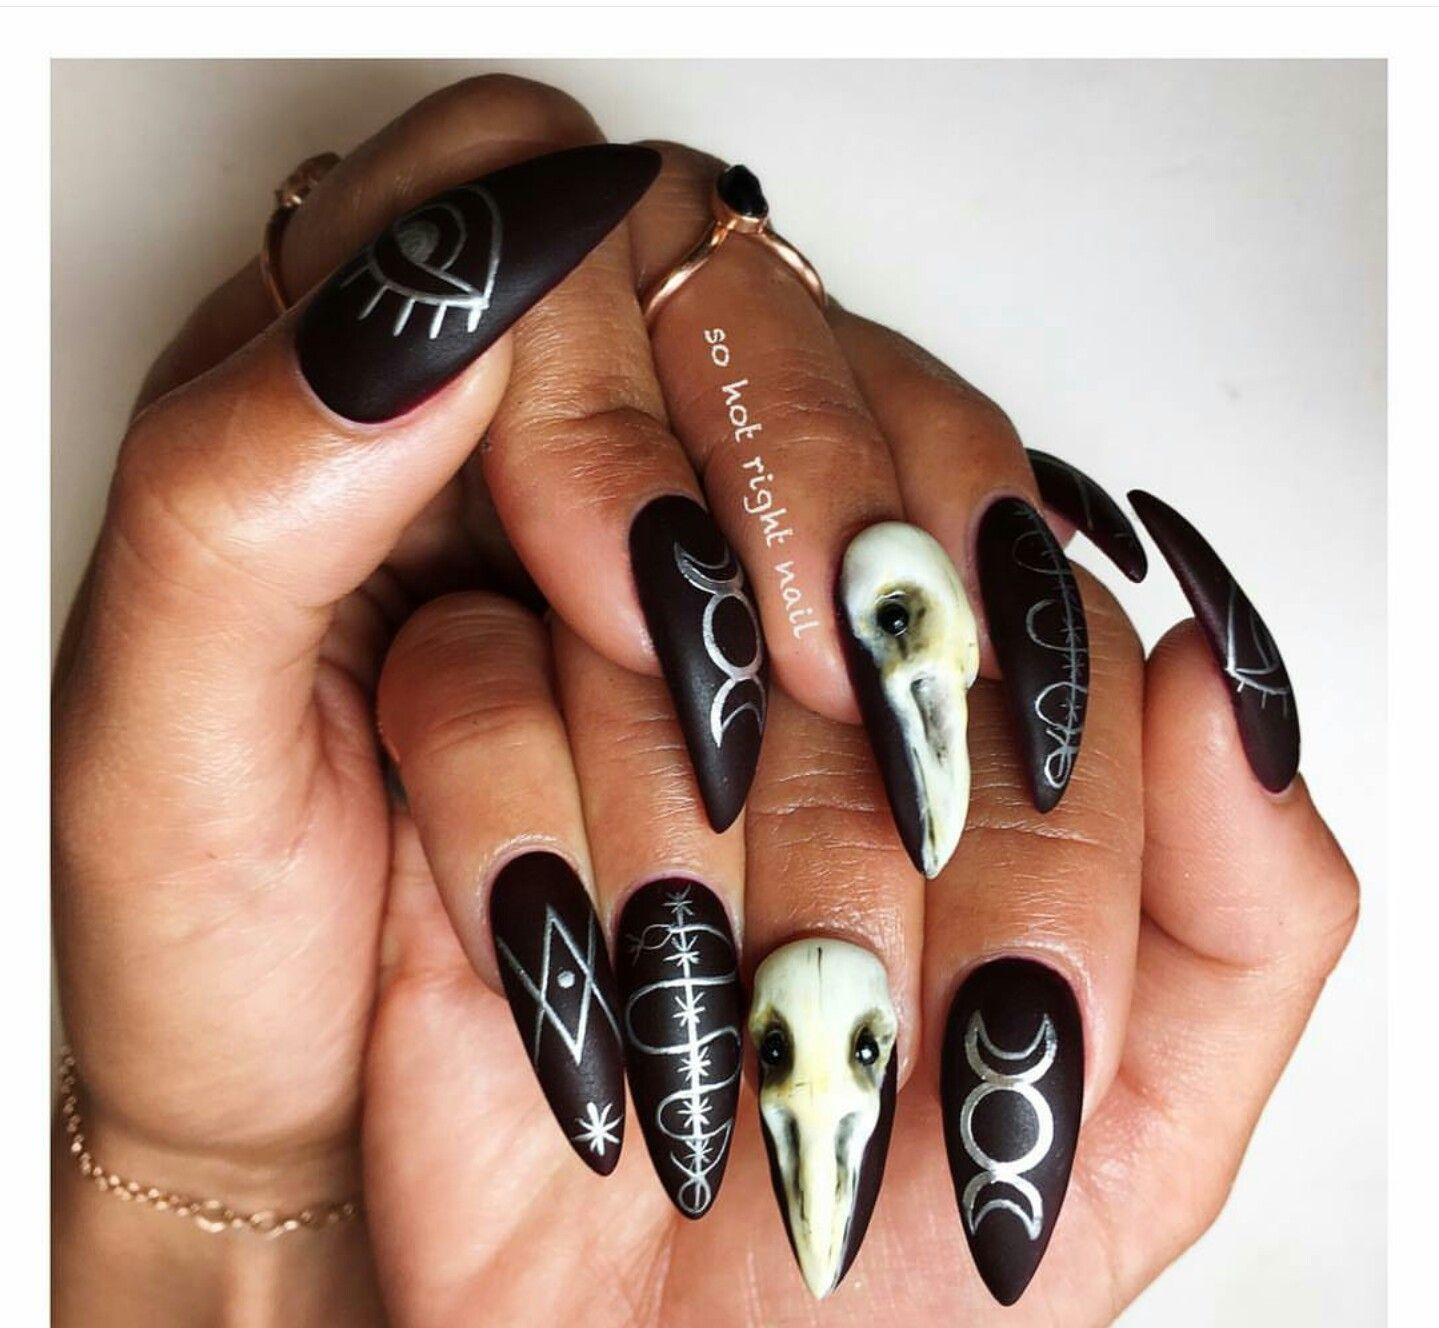 ╳ d e a t h g a s m ╳ | nail art | Pinterest | Makeup, Goth nails ...